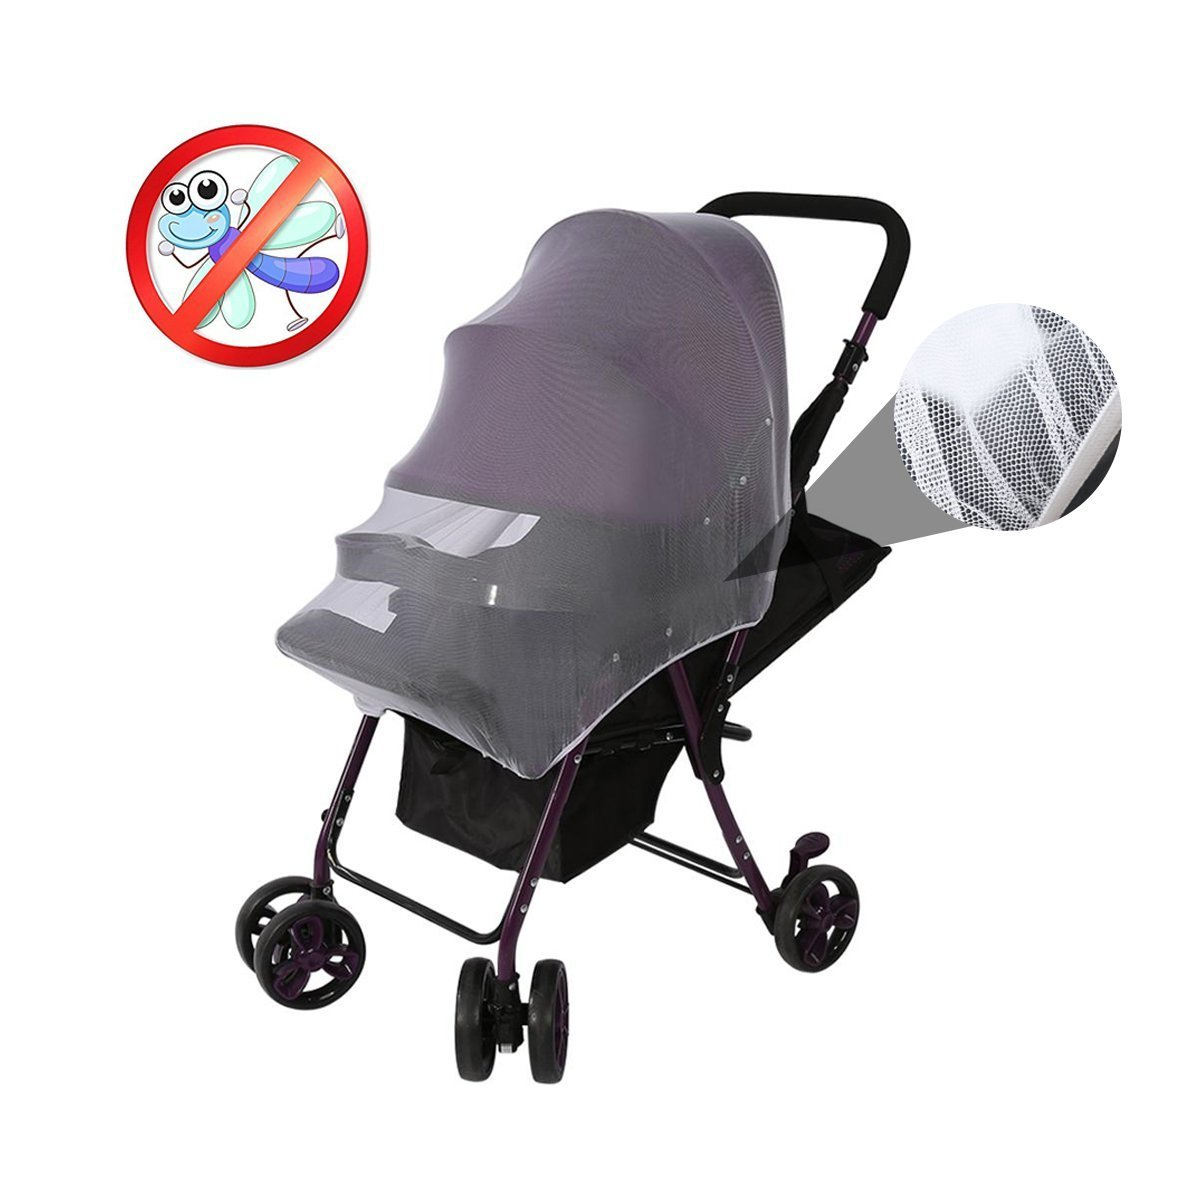 Boxwinds Pack of 2 Multifunctional Universal 150*120cm Baby Cart Full Cover Mosquito Net Travel System Insect Netting Mosquito Insect Bee Bug Net Fits Most Strollers Bassinets, Cradles and Car Seats Safe Mesh Buggy Elastic Design White